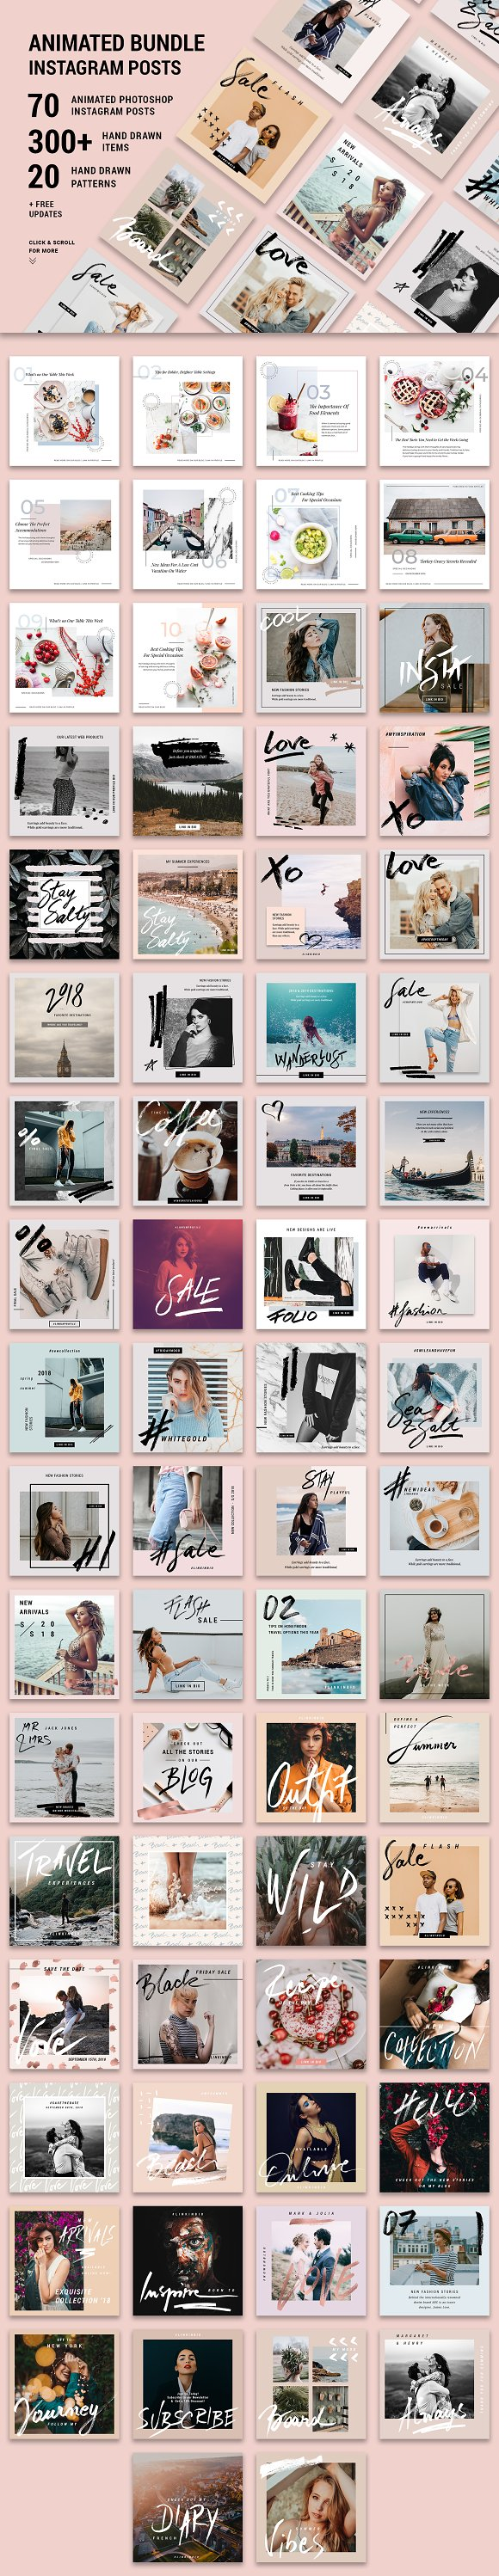 ANIMATED Instagram Posts Bundle